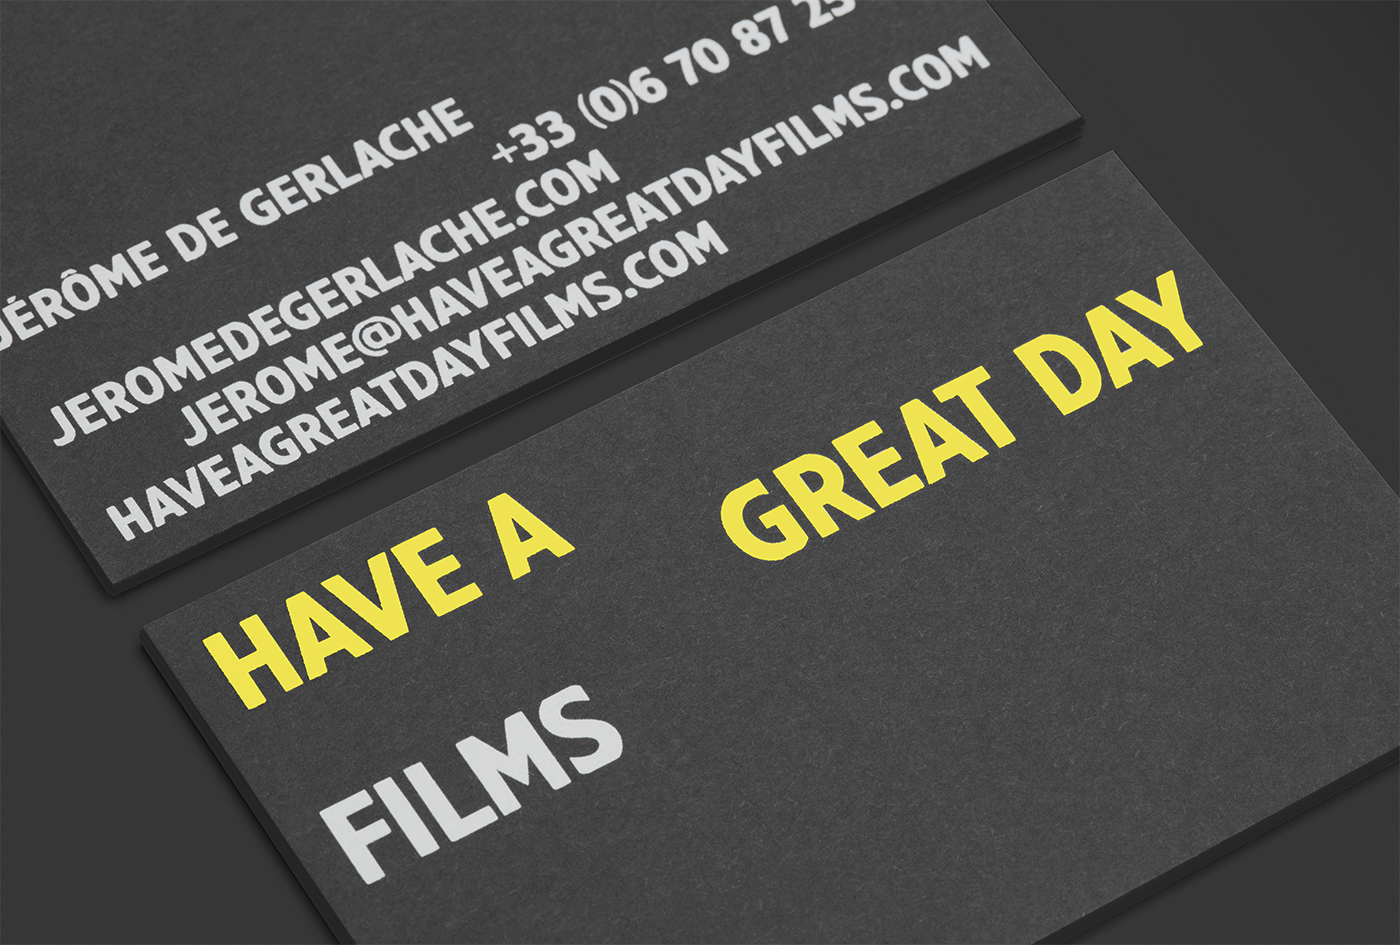 Black card and yellow and white foiled business cards for Have A Great Day Films designed by Hey